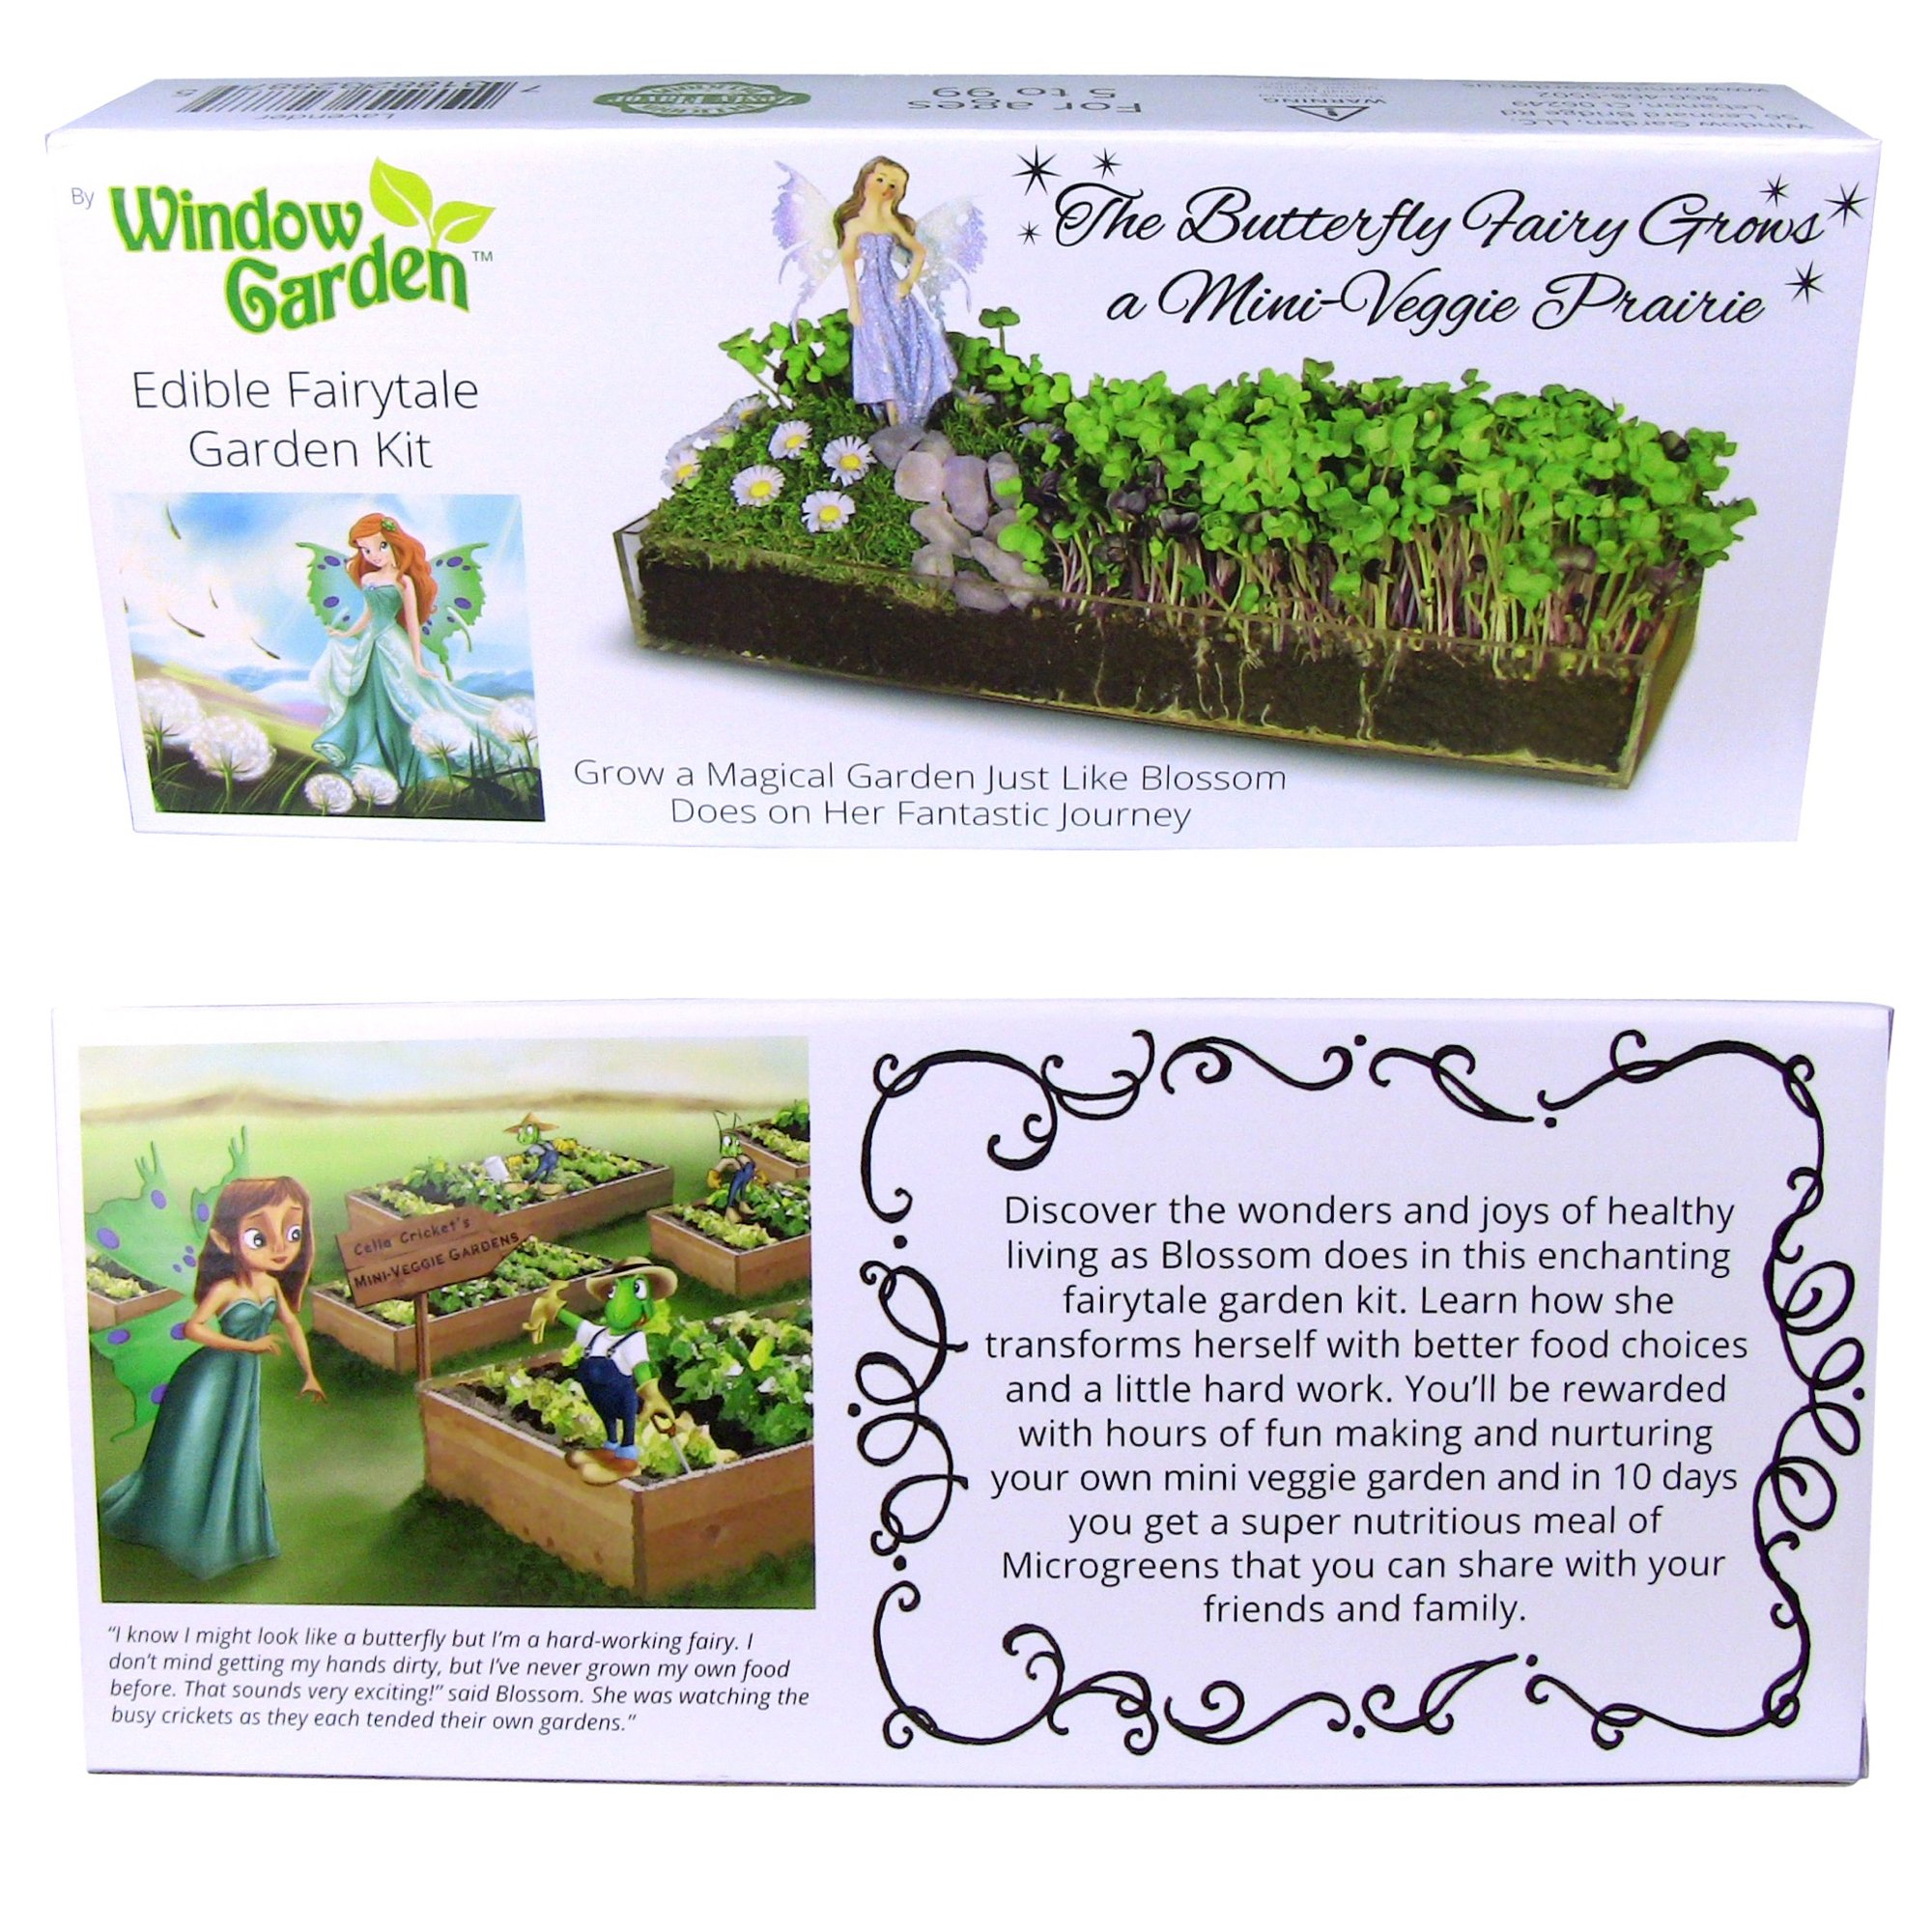 Window Garden Edible Fairy Garden Kit with an Enchanting Fairytale and Accessories by Window Garden (Image #3)